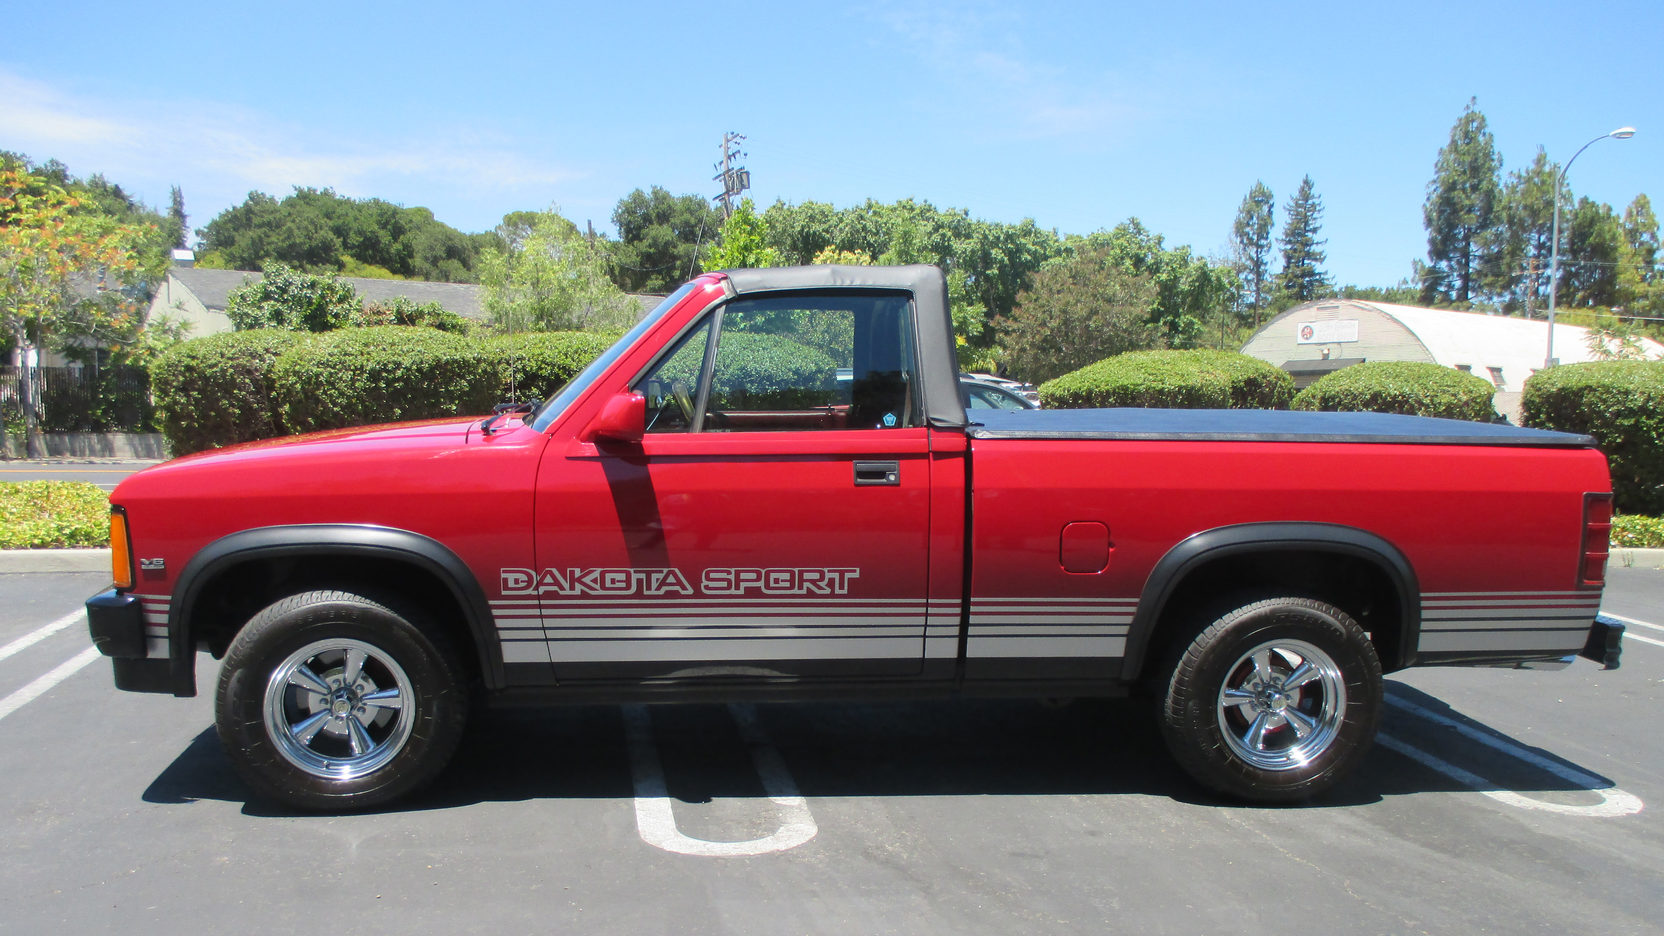 the 1989 91 dodge dakota sport convertible was the drop top no one wanted hagerty media 91 dodge dakota sport convertible was